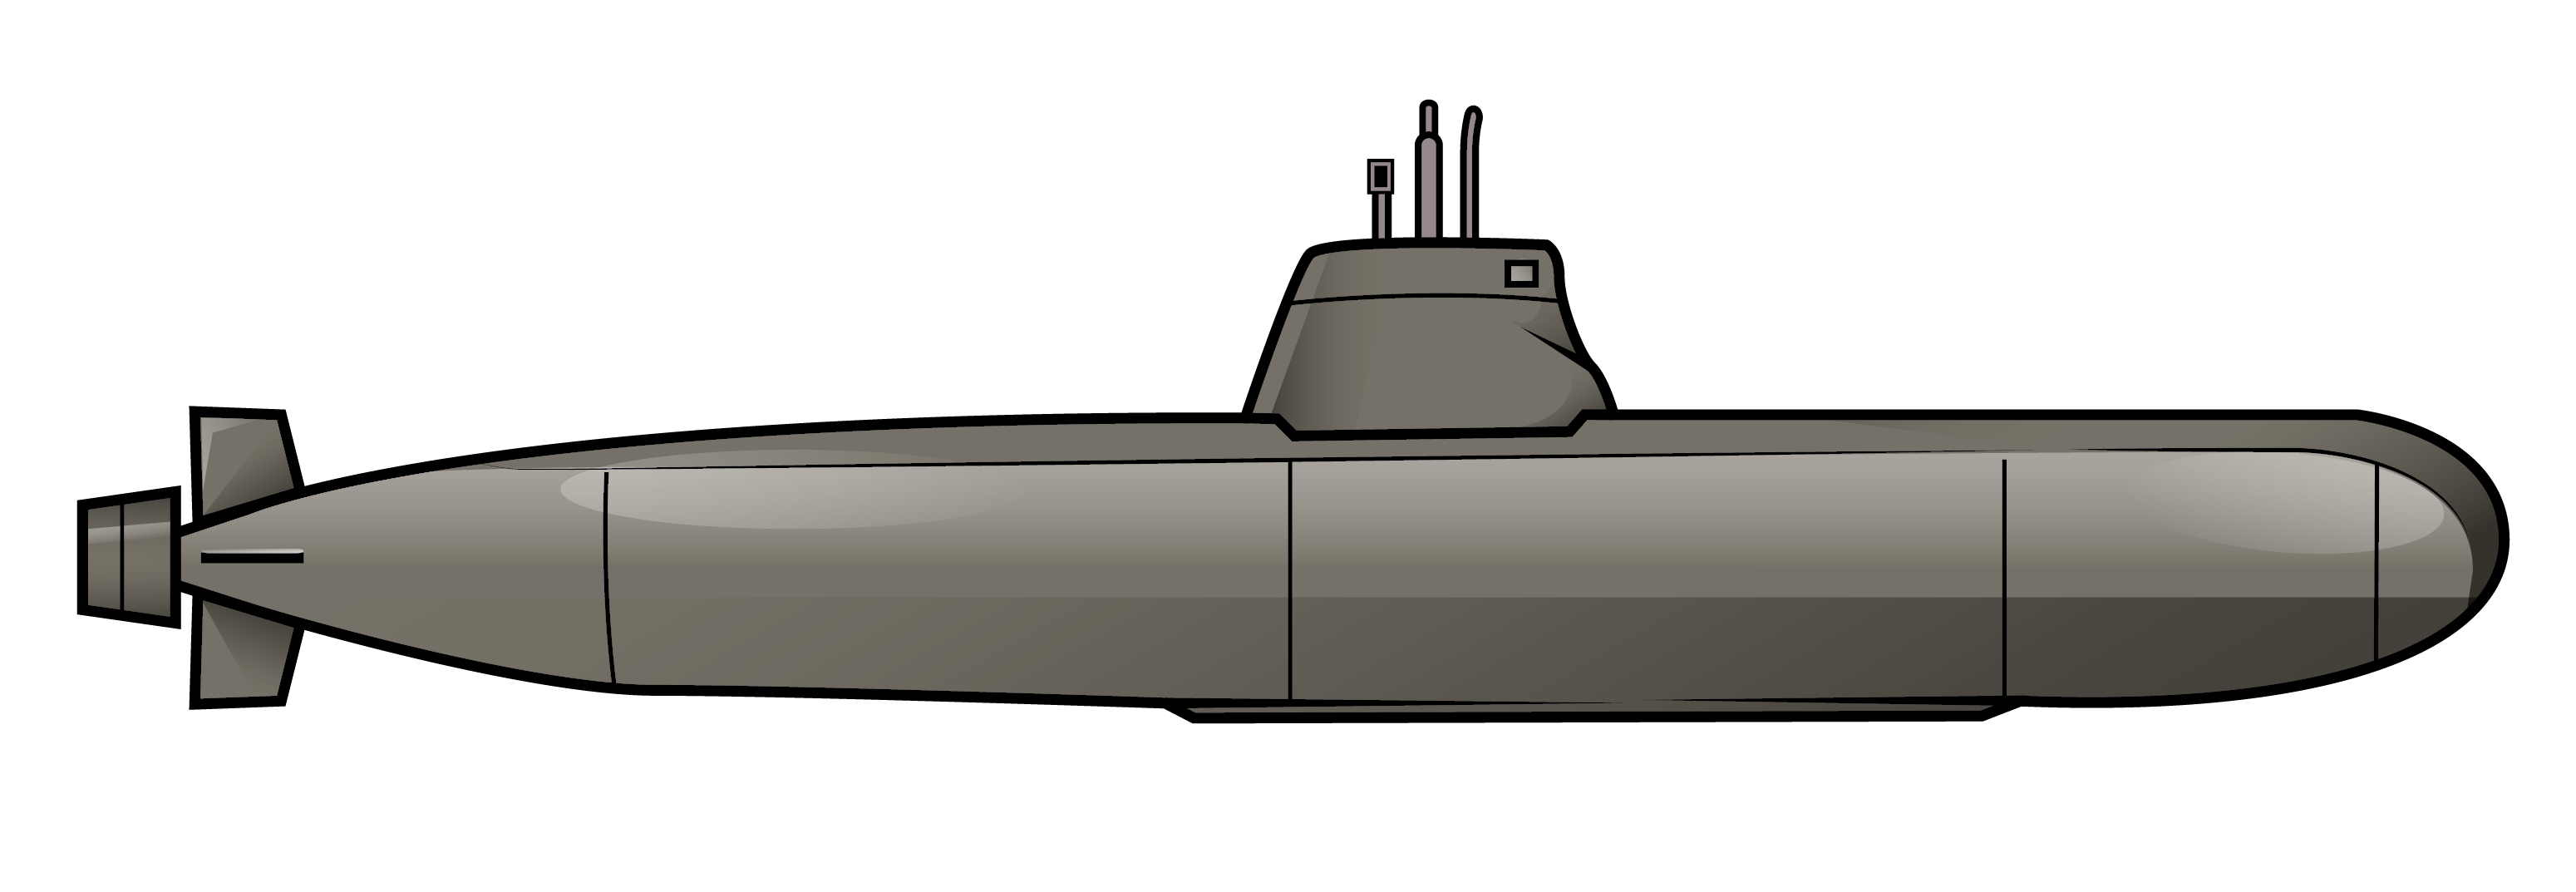 Submarine Clipart at GetDrawings.com.